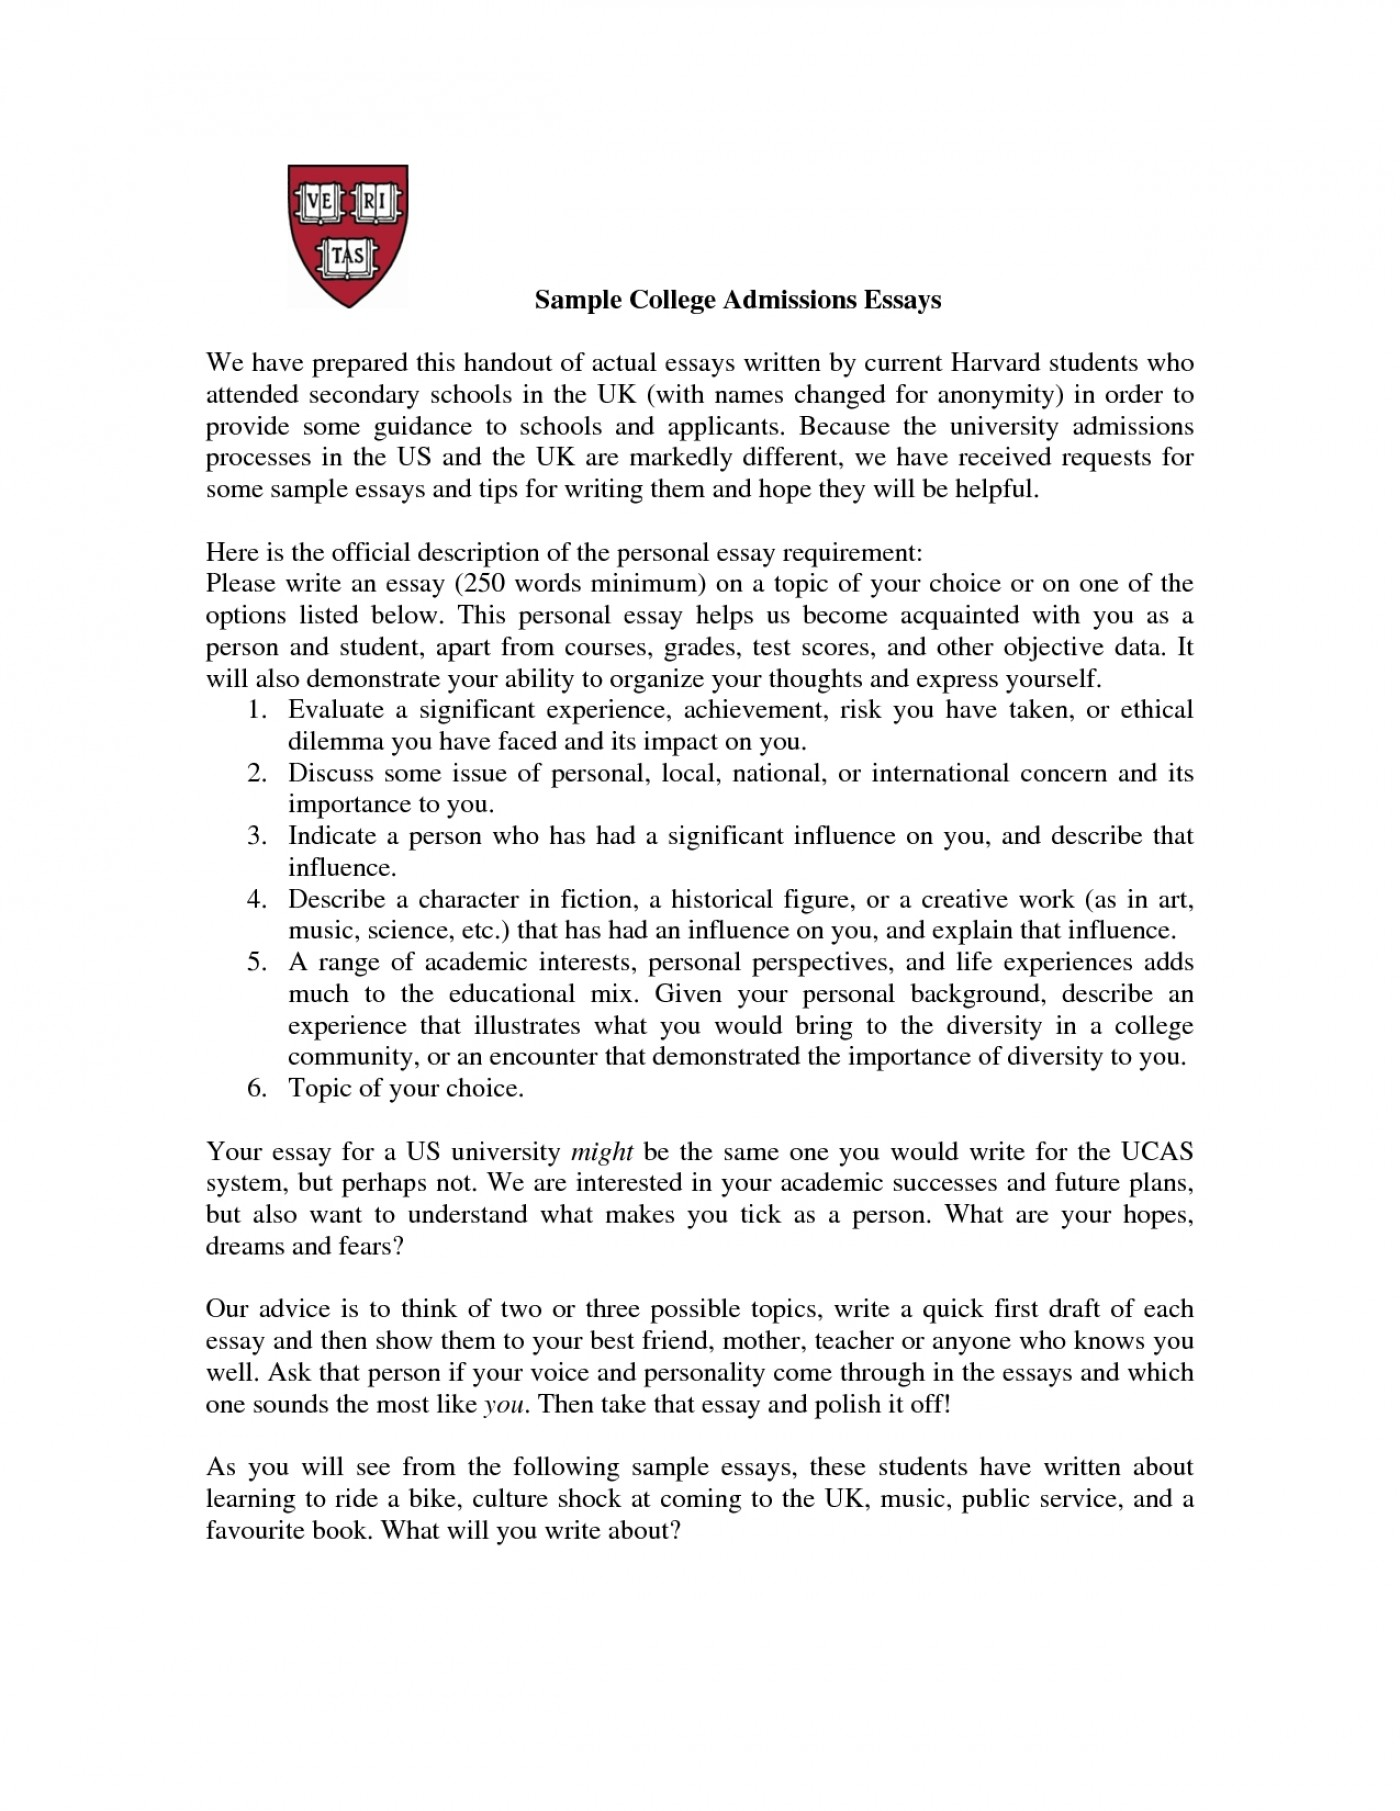 024 College Admissionssayxamples Writings Andssays Graduate Business Admissions Sample For School International Wit Counseling Psychology Nursing Samplesngineeringducation Freexample Surprising Essay Admission Personal 1400